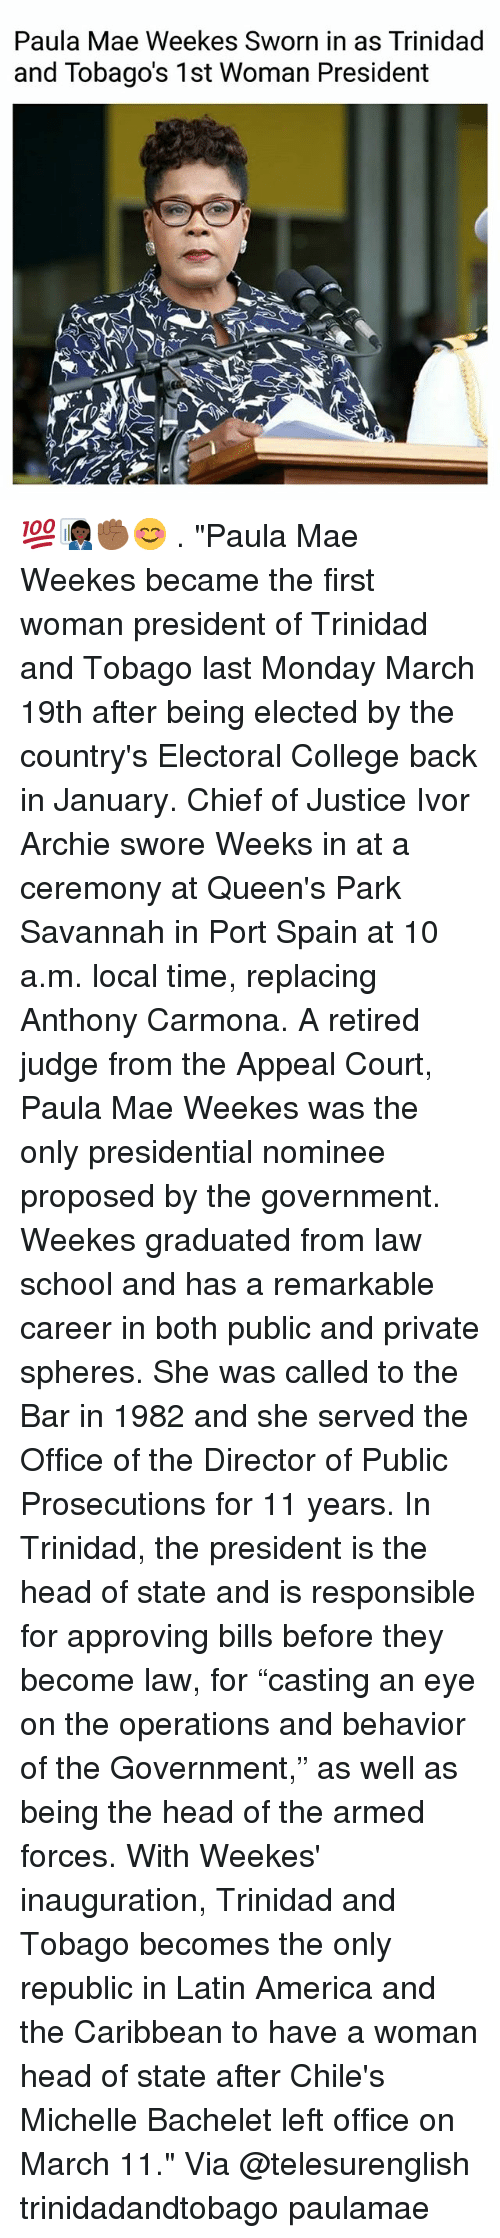 "archie: Paula Mae Weekes Sworn in as Trinidad  and Tobago's 1st Woman President 💯👩🏿‍💼✊🏾😊 . ""Paula Mae Weekes became the first woman president of Trinidad and Tobago last Monday March 19th after being elected by the country's Electoral College back in January. Chief of Justice Ivor Archie swore Weeks in at a ceremony at Queen's Park Savannah in Port Spain at 10 a.m. local time, replacing Anthony Carmona. A retired judge from the Appeal Court, Paula Mae Weekes was the only presidential nominee proposed by the government. Weekes graduated from law school and has a remarkable career in both public and private spheres. She was called to the Bar in 1982 and she served the Office of the Director of Public Prosecutions for 11 years. In Trinidad, the president is the head of state and is responsible for approving bills before they become law, for ""casting an eye on the operations and behavior of the Government,"" as well as being the head of the armed forces. With Weekes' inauguration, Trinidad and Tobago becomes the only republic in Latin America and the Caribbean to have a woman head of state after Chile's Michelle Bachelet left office on March 11."" Via @telesurenglish trinidadandtobago paulamae"